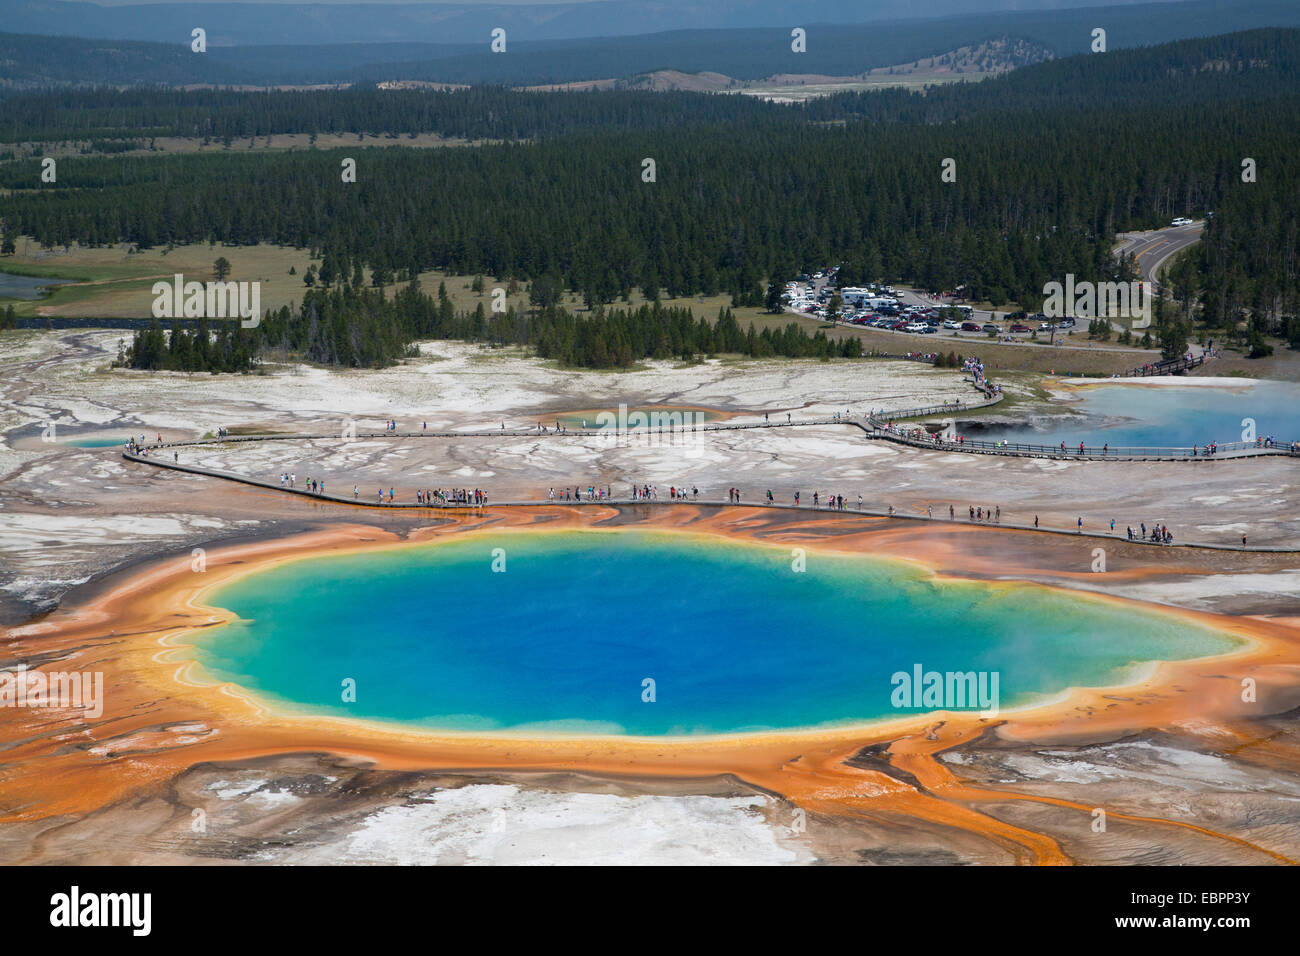 Grand Prismatic Spring, Midway Geyser Basin, Yellowstone National Park, UNESCO World Heritage Site, Wyoming, USA - Stock Image